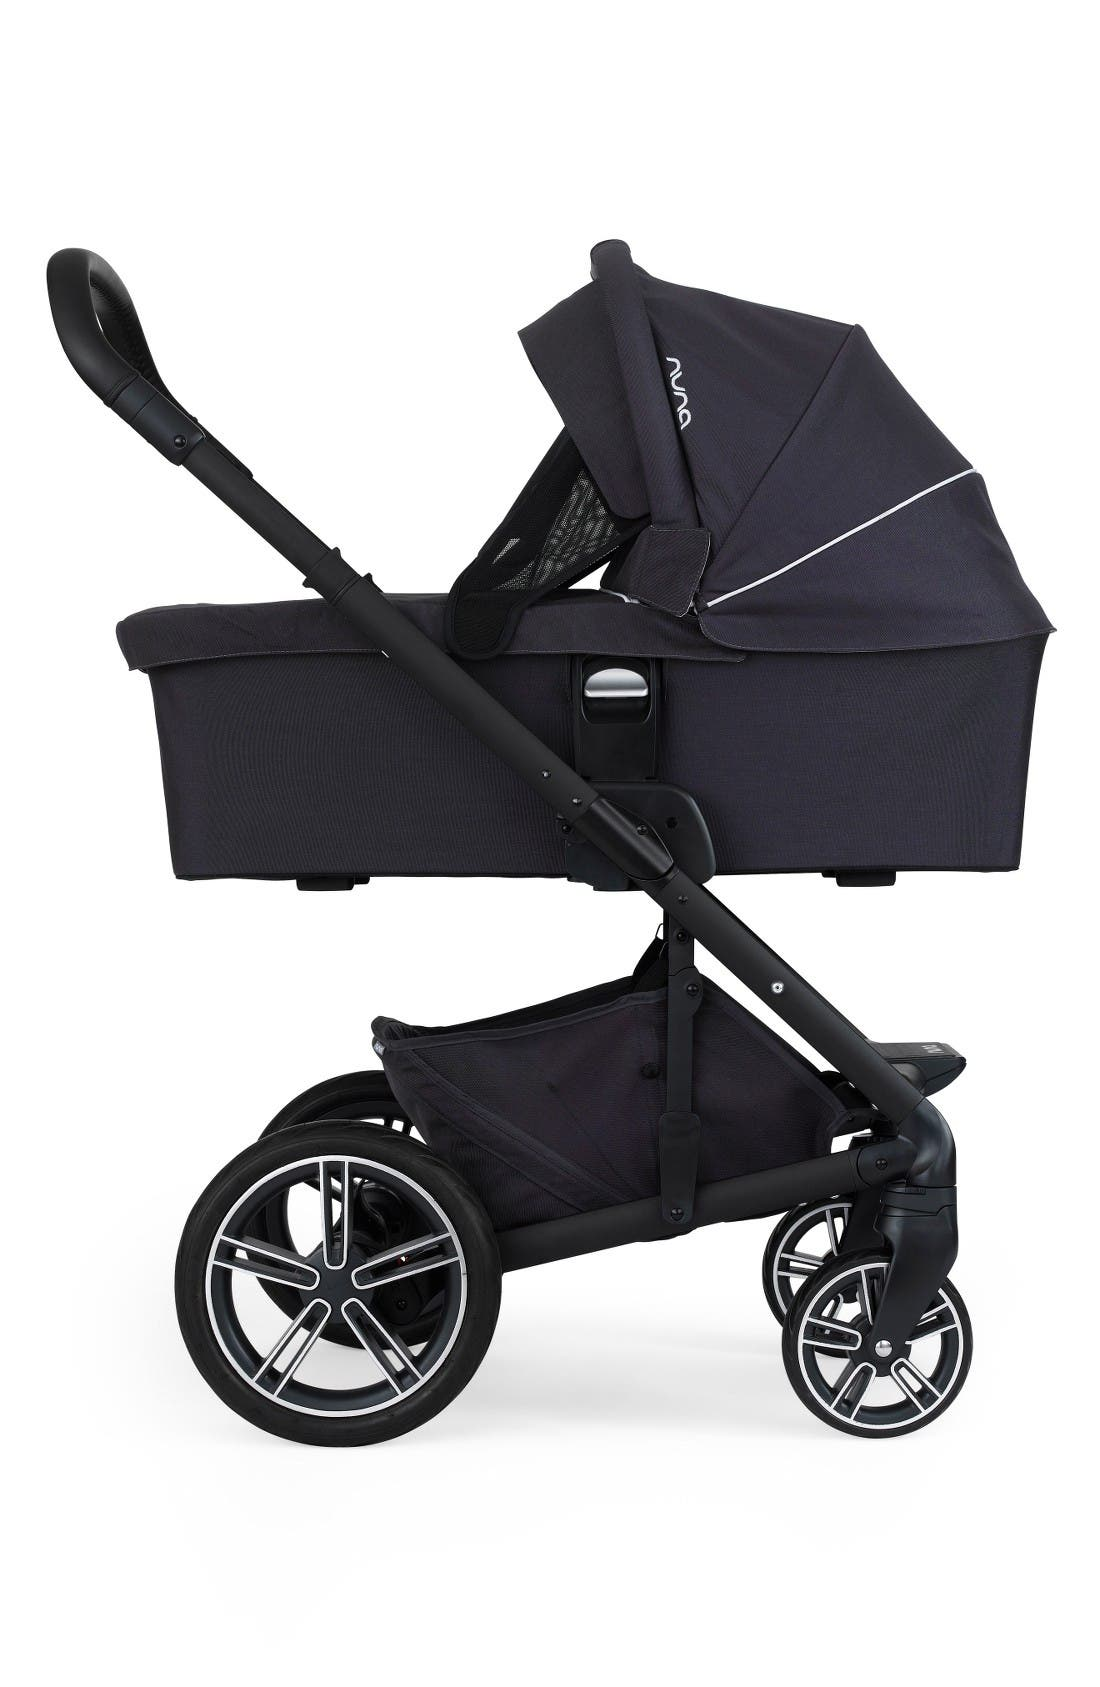 MIXX<sup>™</sup> Stroller System & PIPA<sup>™</sup> Car Seat Set,                             Alternate thumbnail 10, color,                             Jett